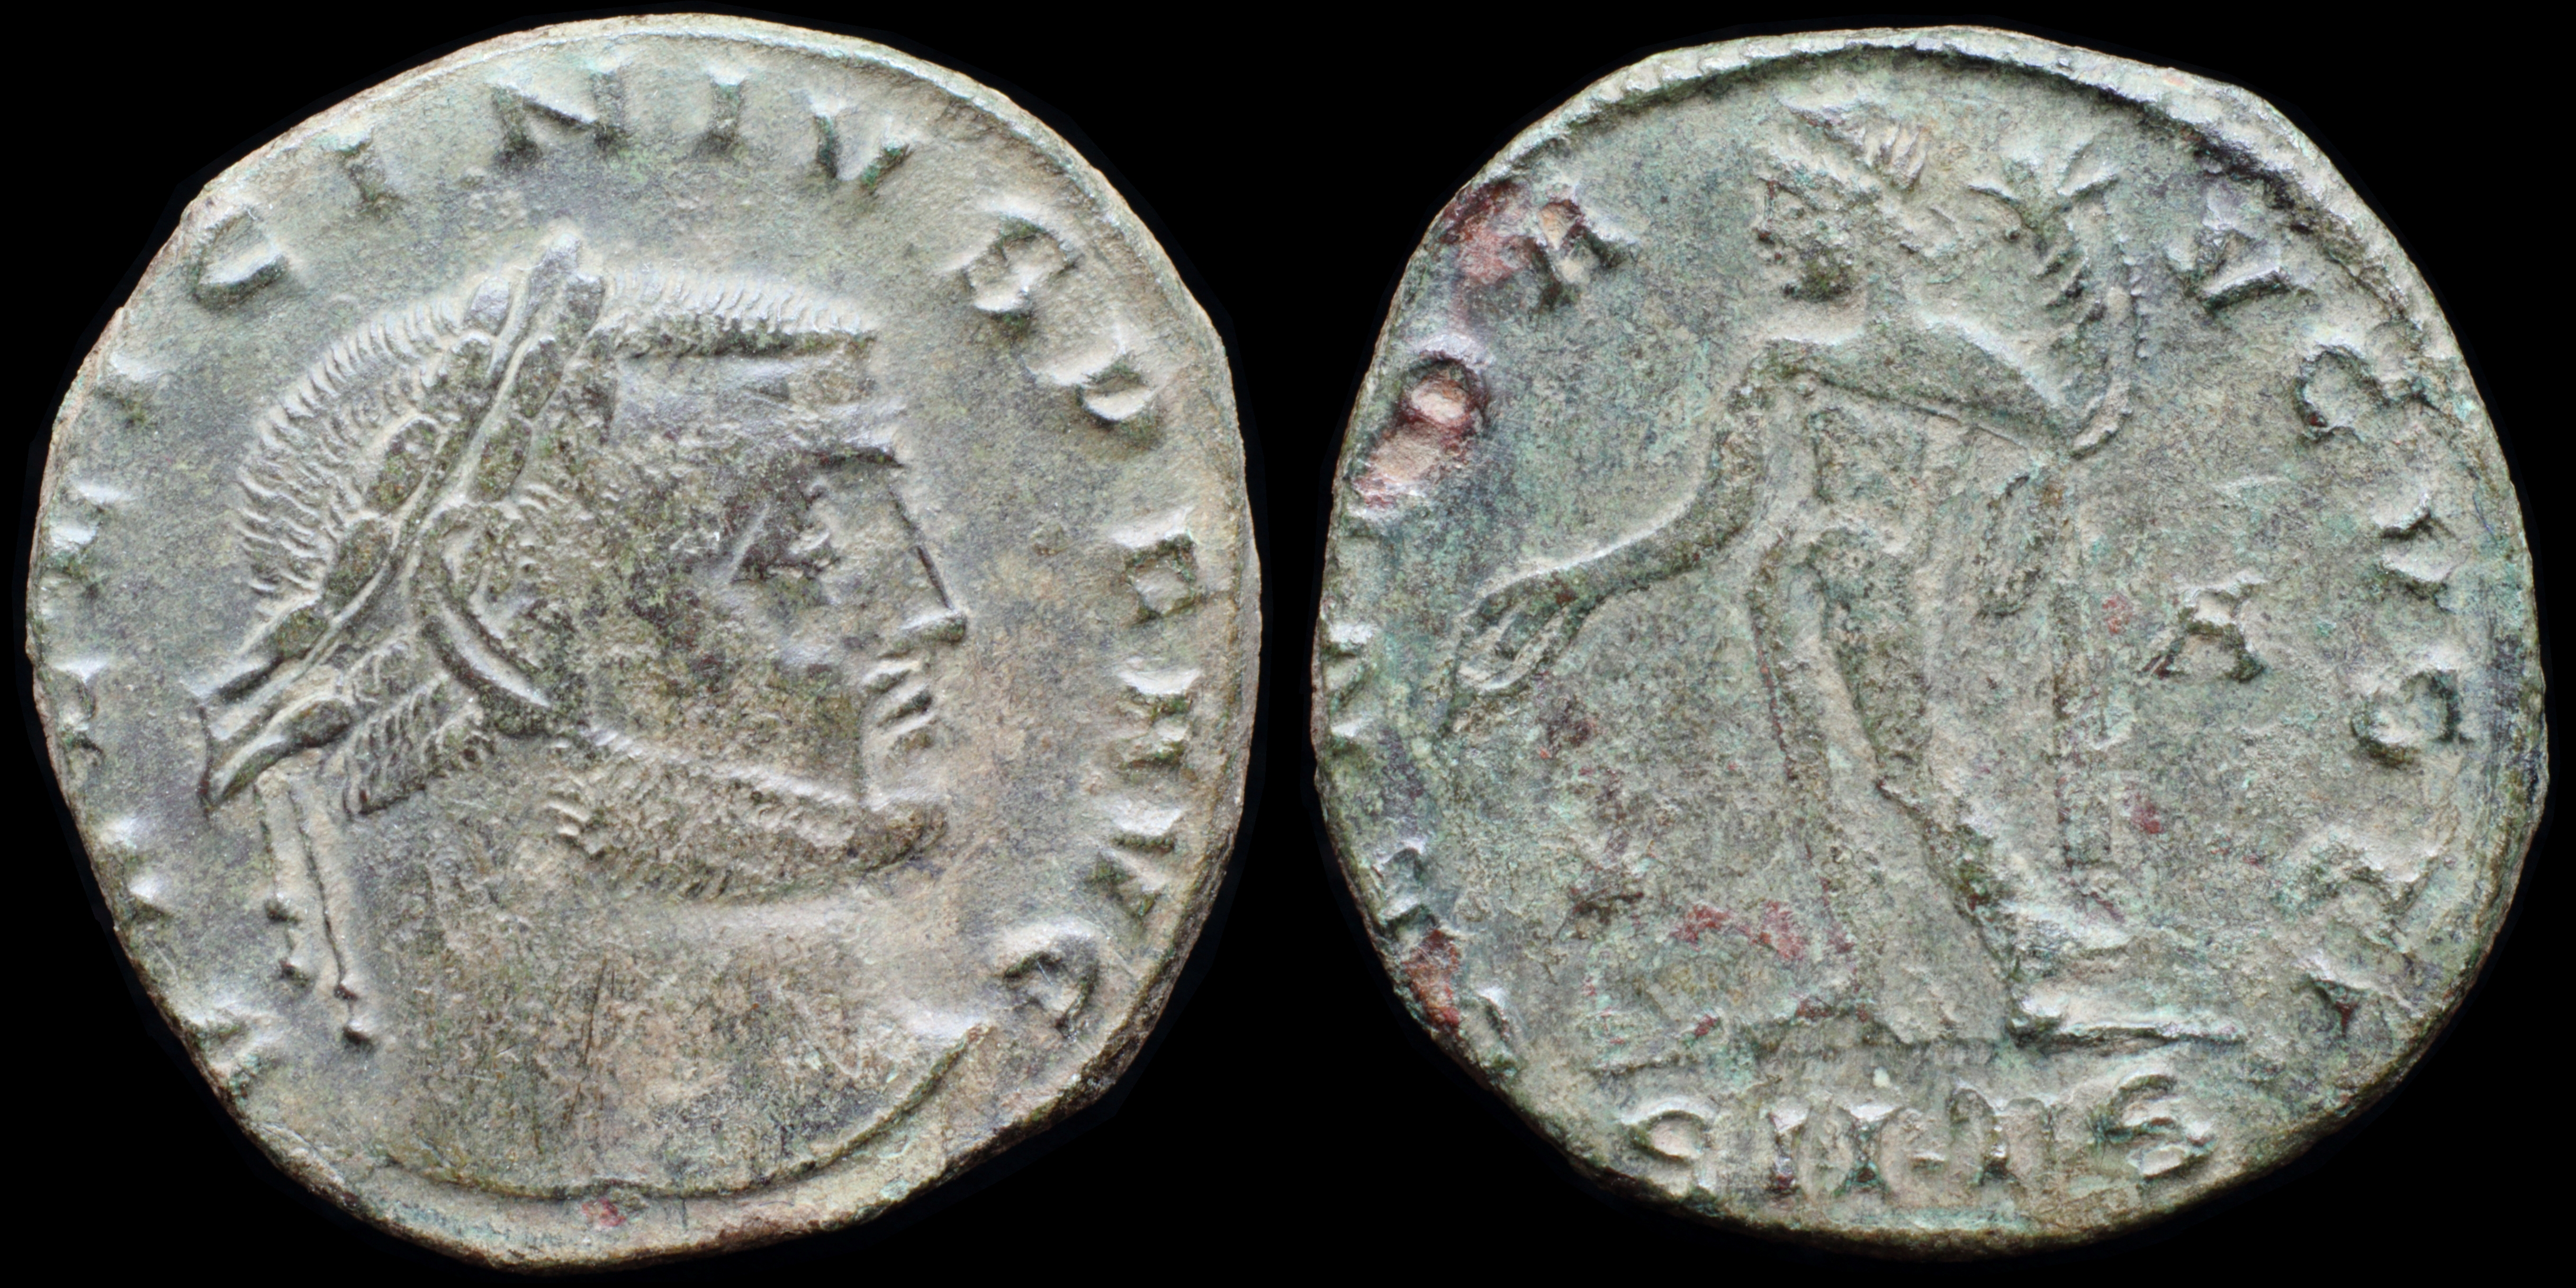 /Files/Images/Coinsite/CoinDB/961_Licinius_Thessalonica.jpg